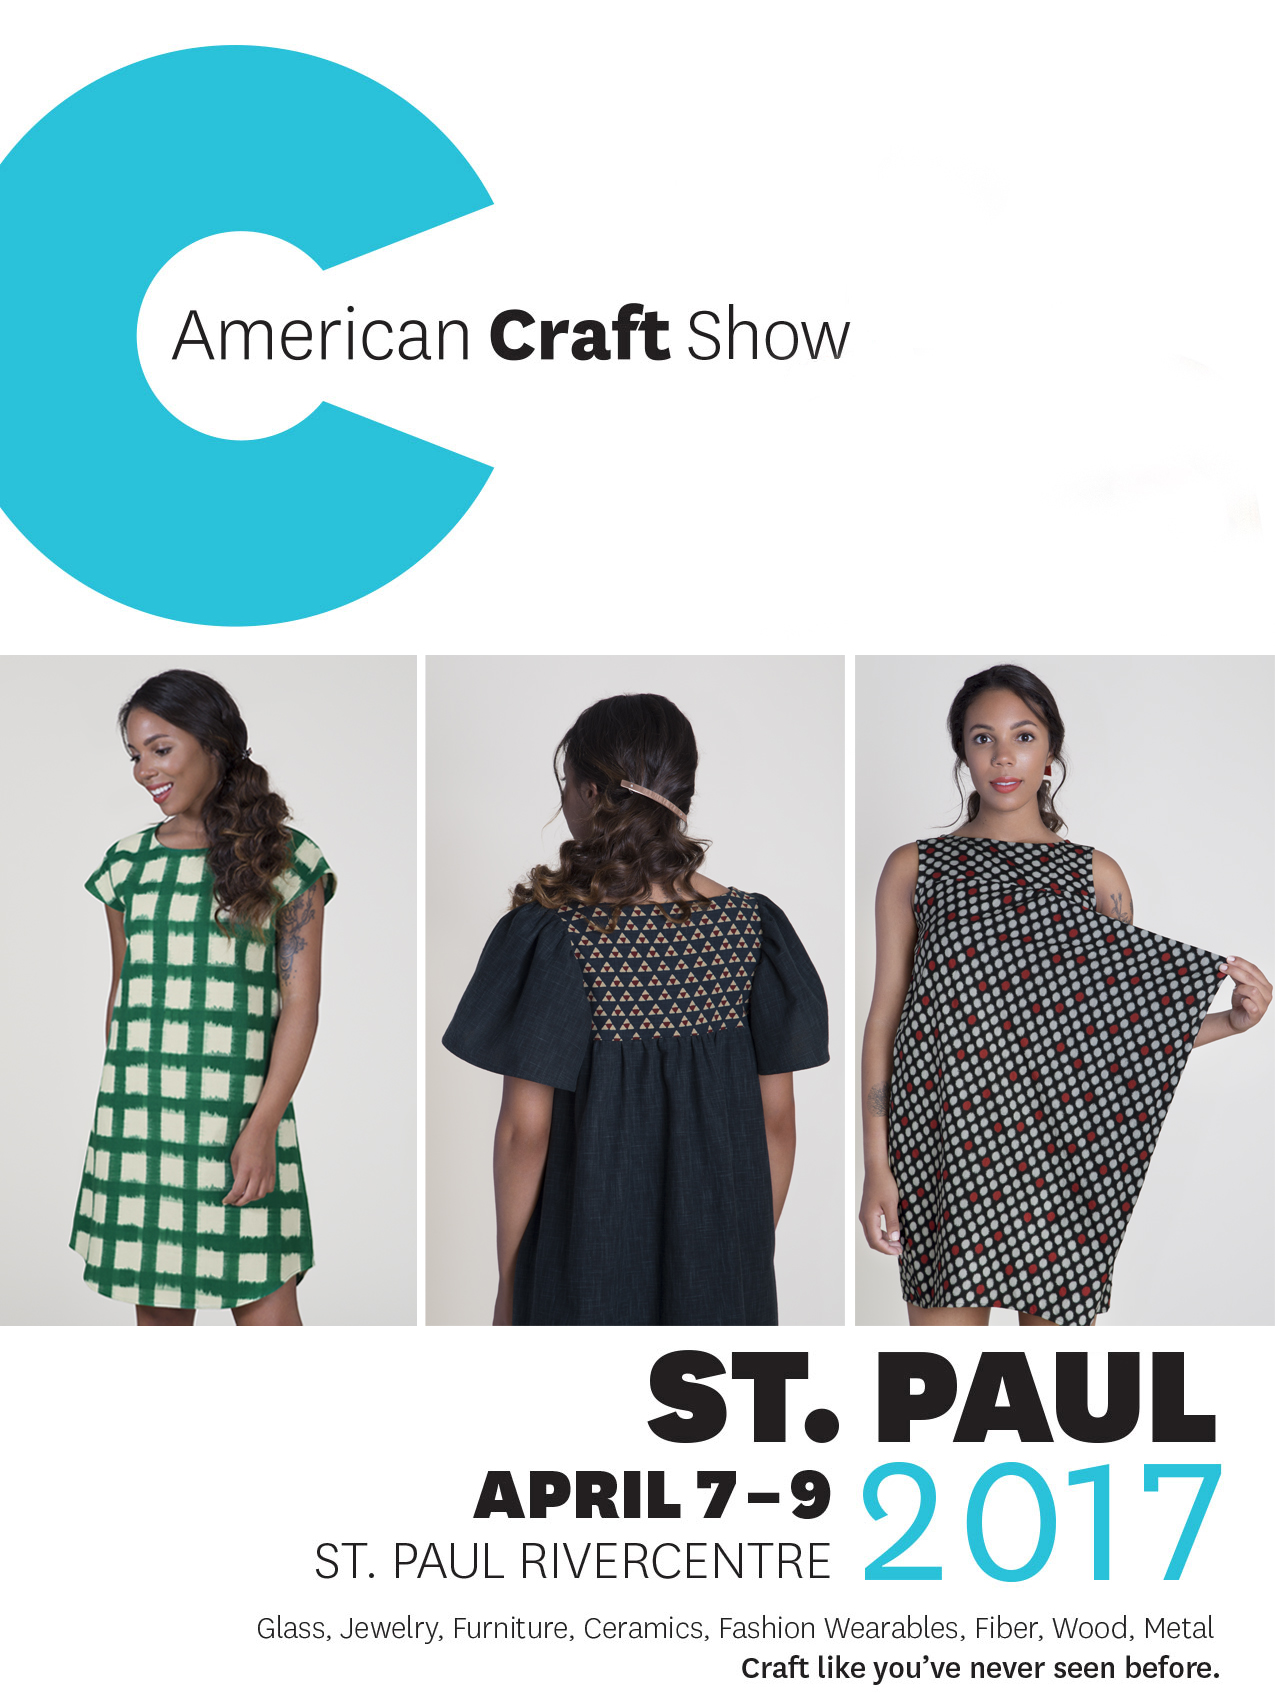 Jamie Lau Designs American Craft Show St. Paul